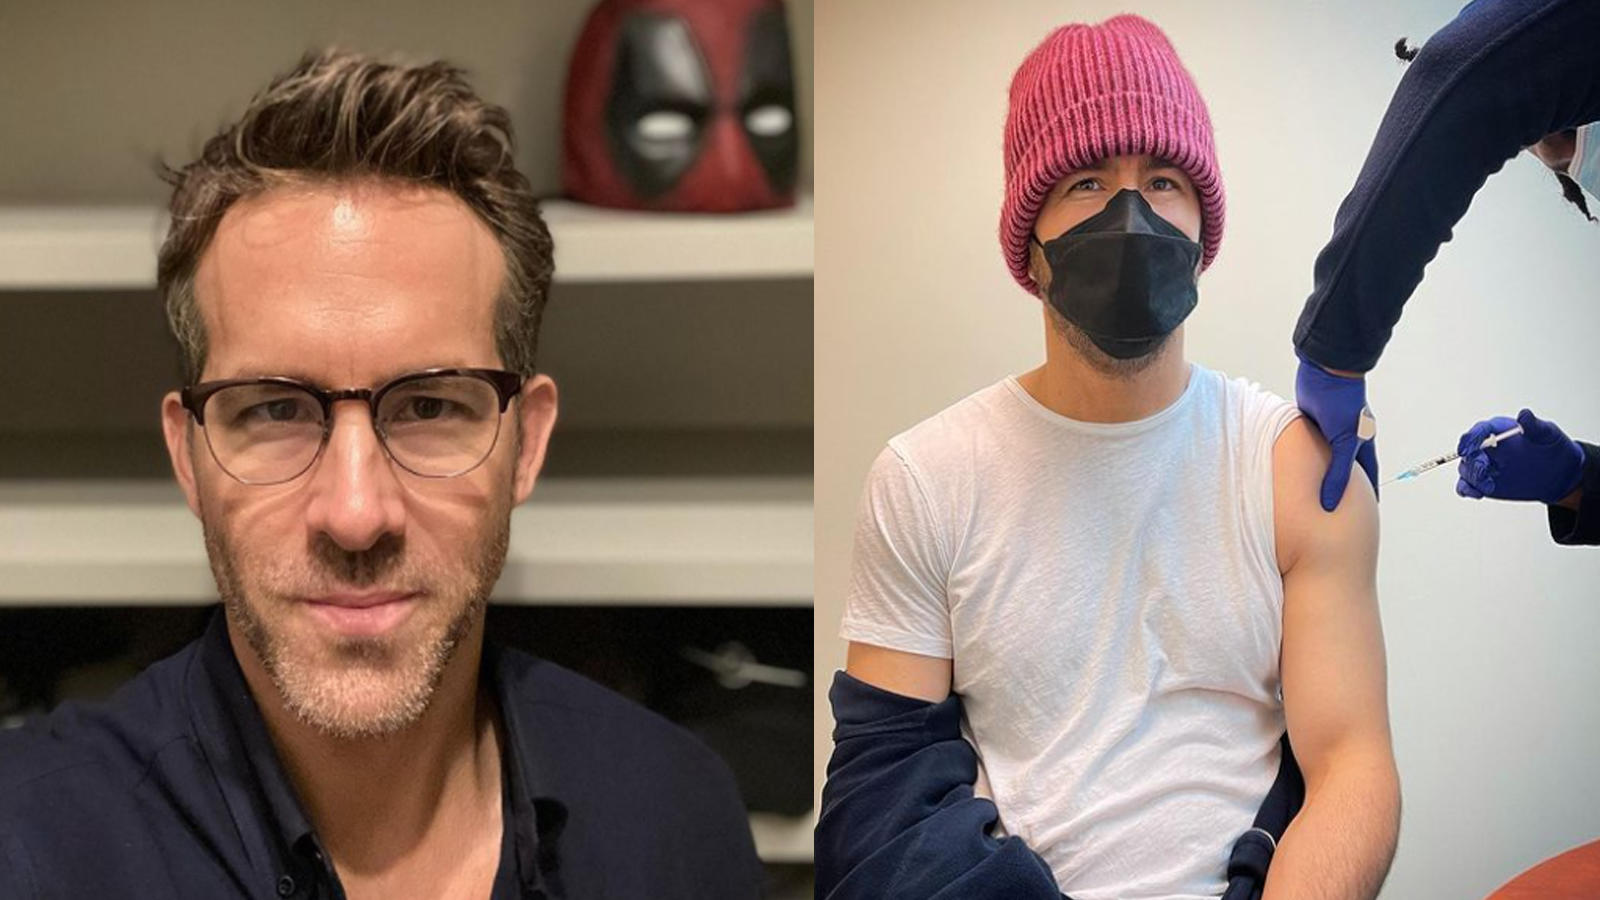 Ryan Reynolds takes a jab of COVID-19 vaccine, writes 'Finally got 5G' | English Movie News – Hollywood – Times of India